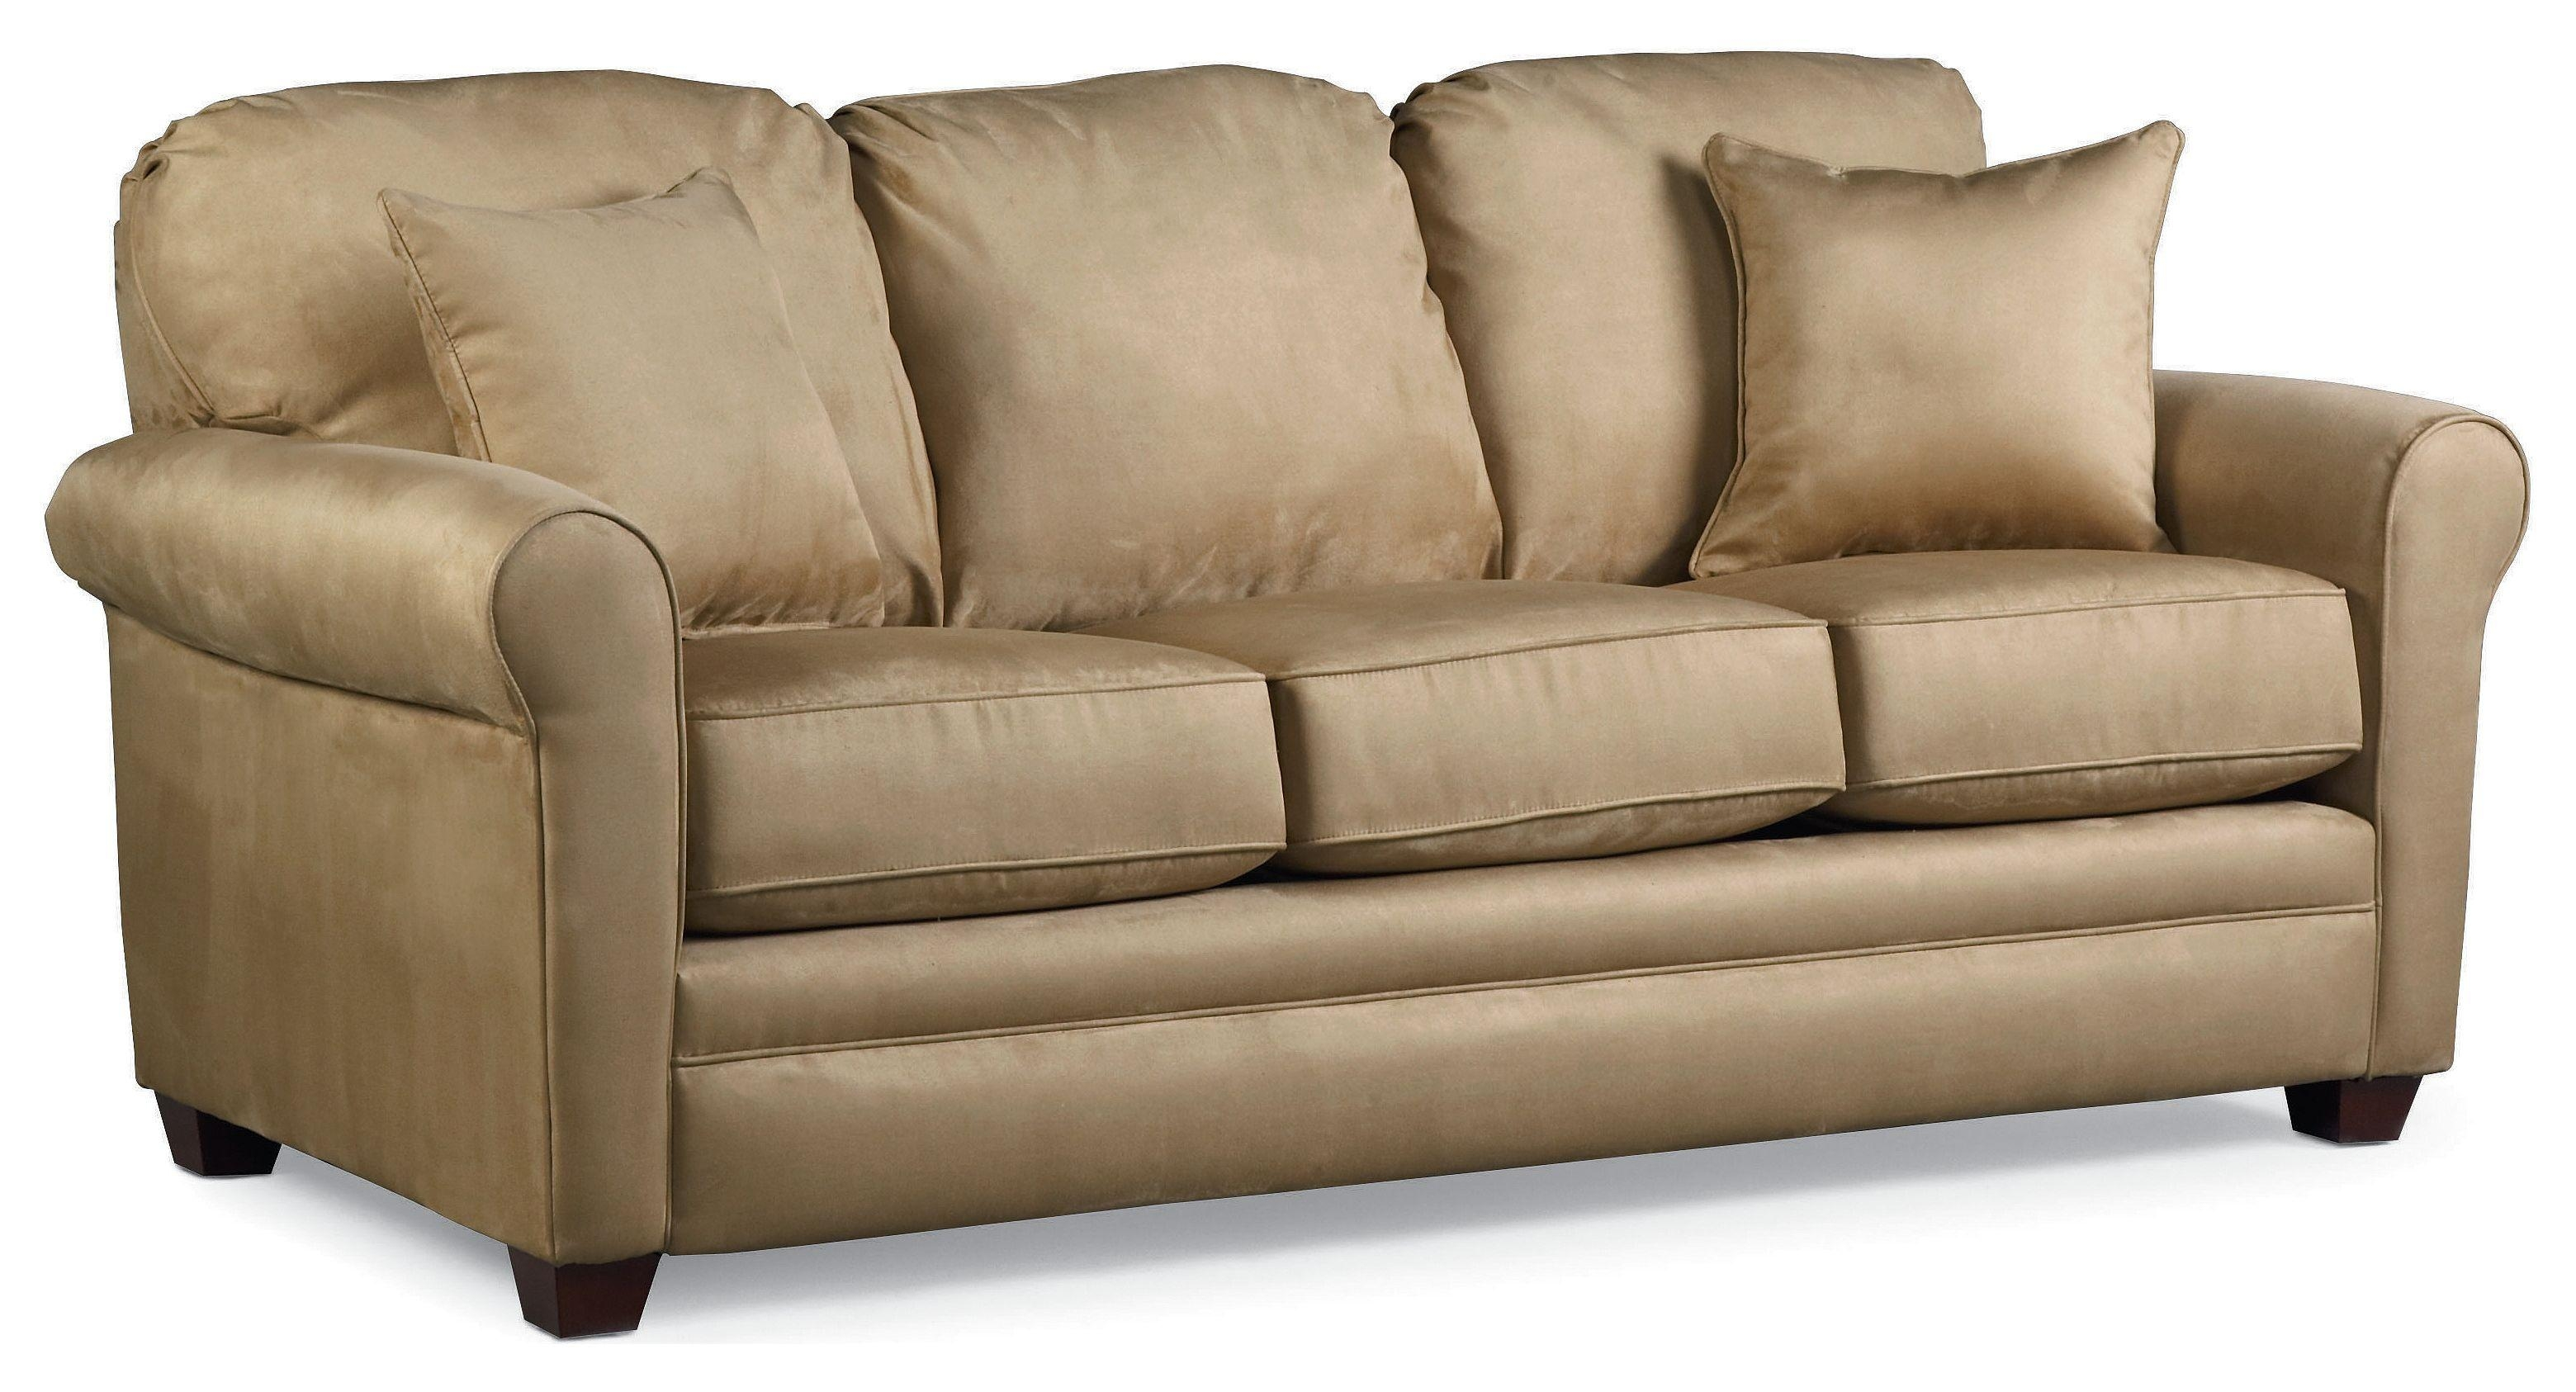 queen size sofa bed singapore cheap sofas sets 20 best ideas sleepers